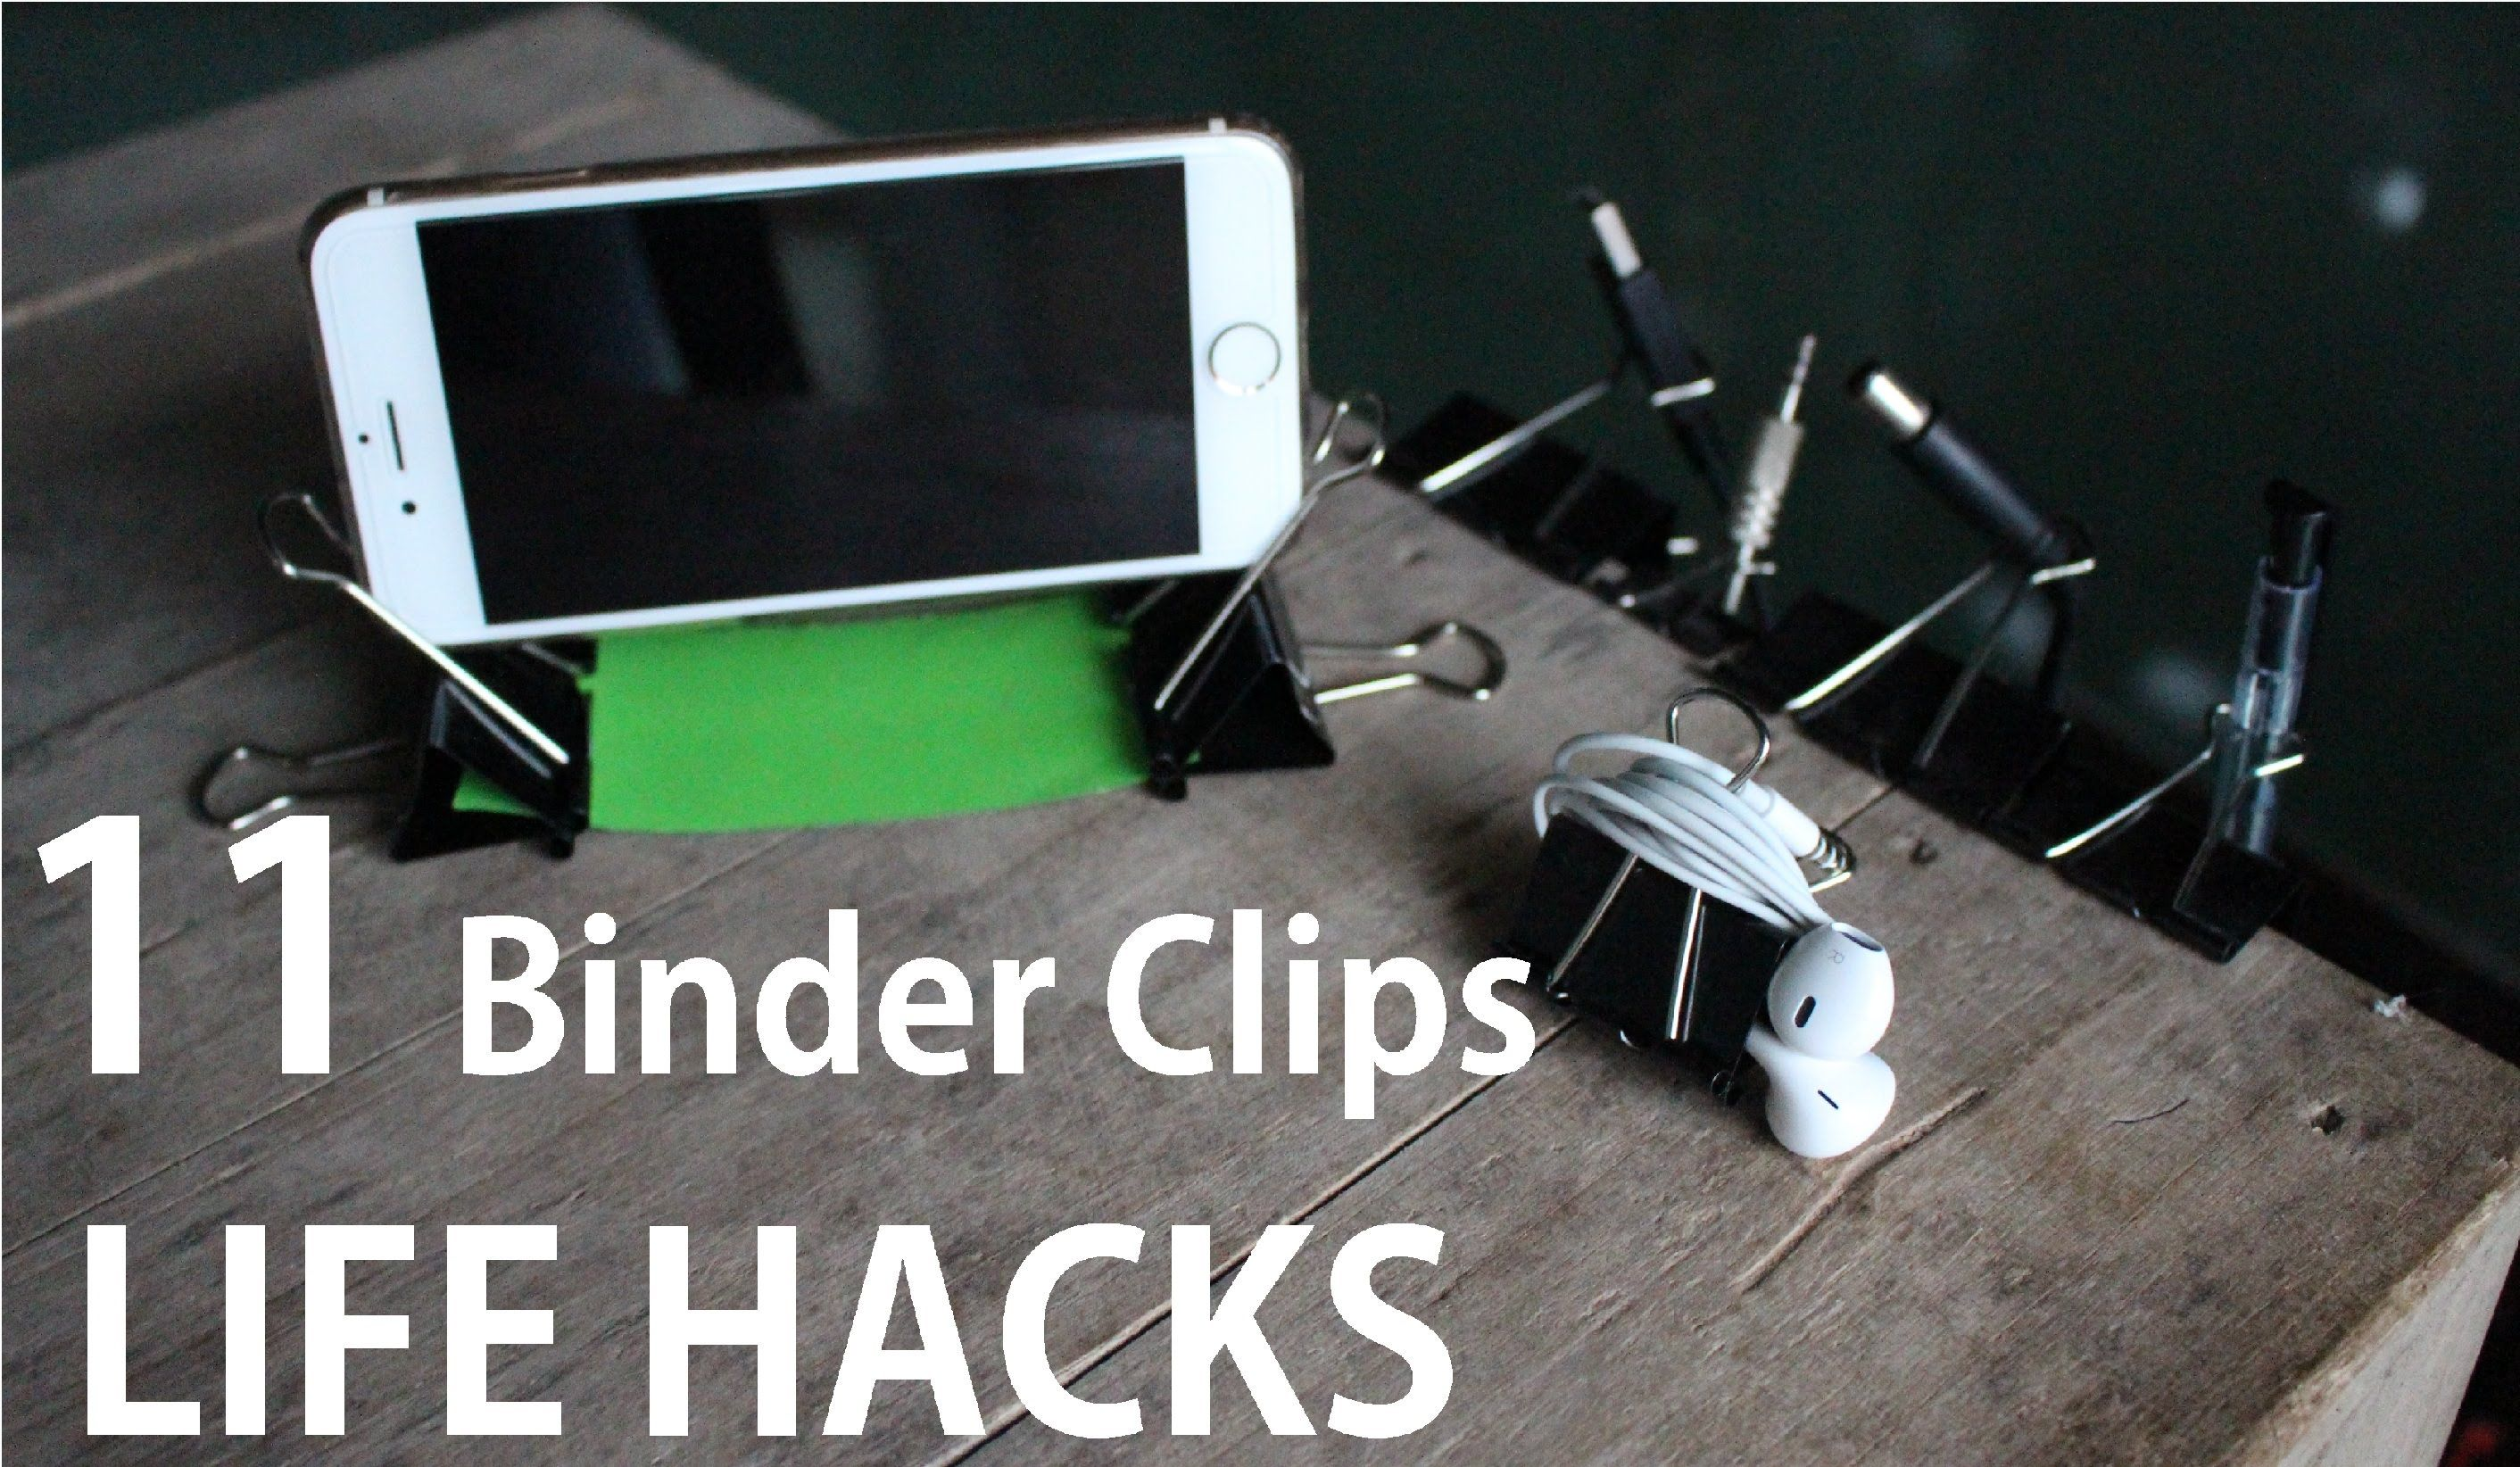 11 binder clips life hacks you can do it yourself diy cool ideas 11 binder clips life hacks you can do it yourself diy solutioingenieria Images